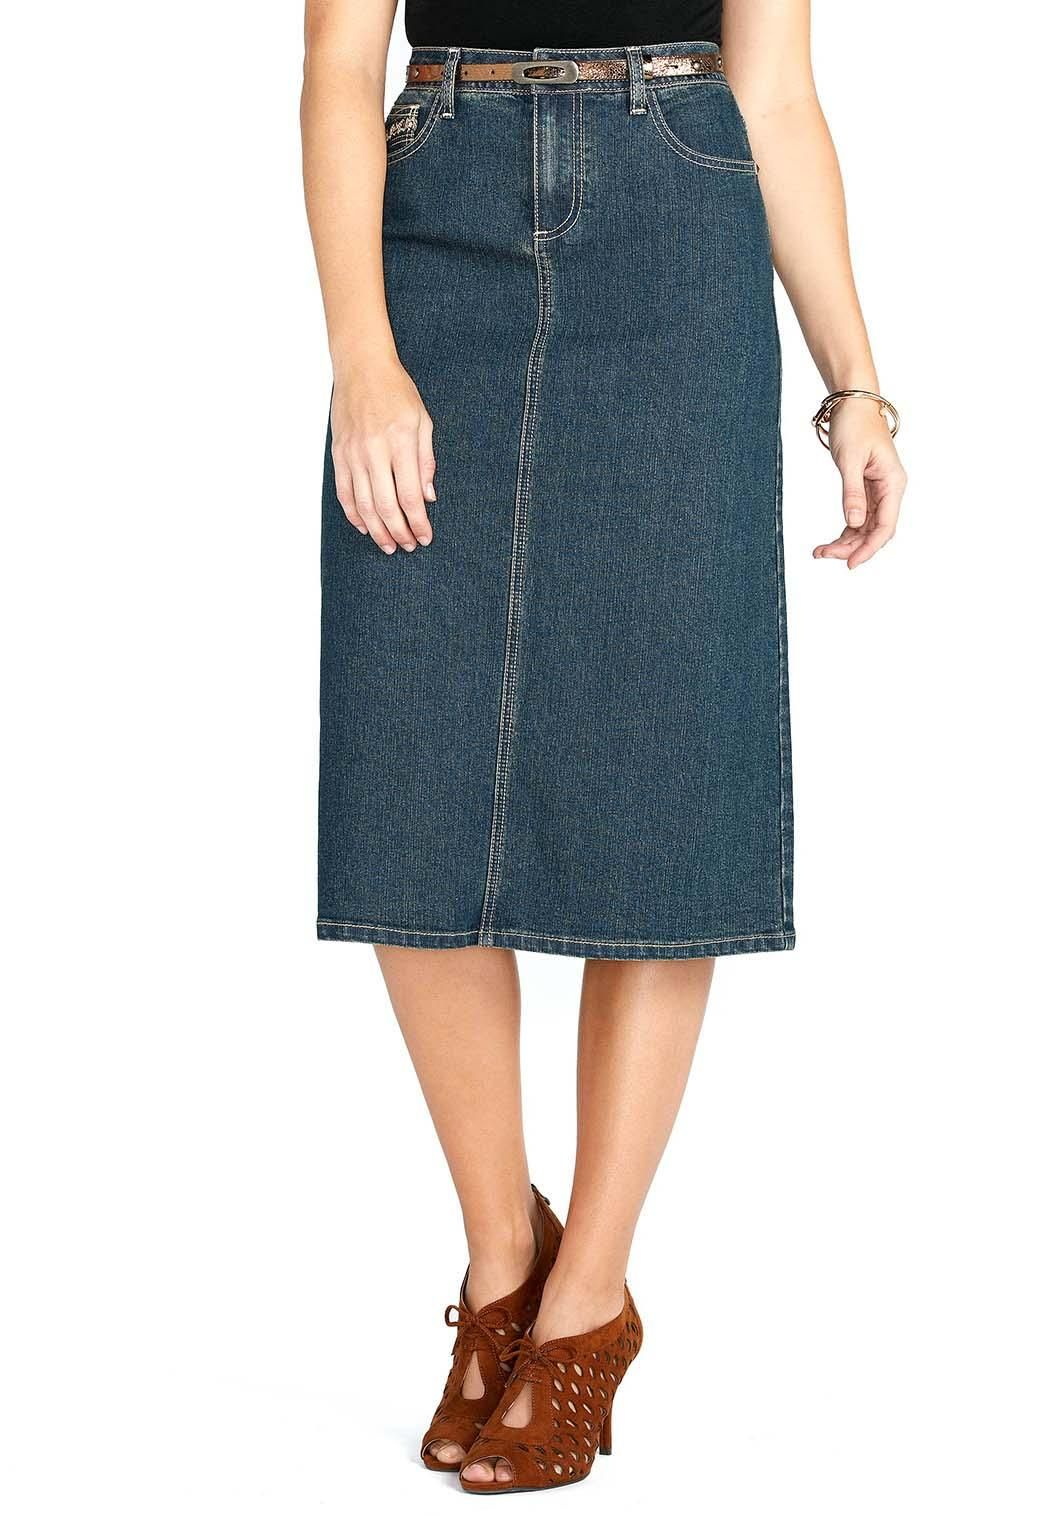 a2a9d789e01 Stud Embellished Belted Denim Skirt Skirts Cato Fashions